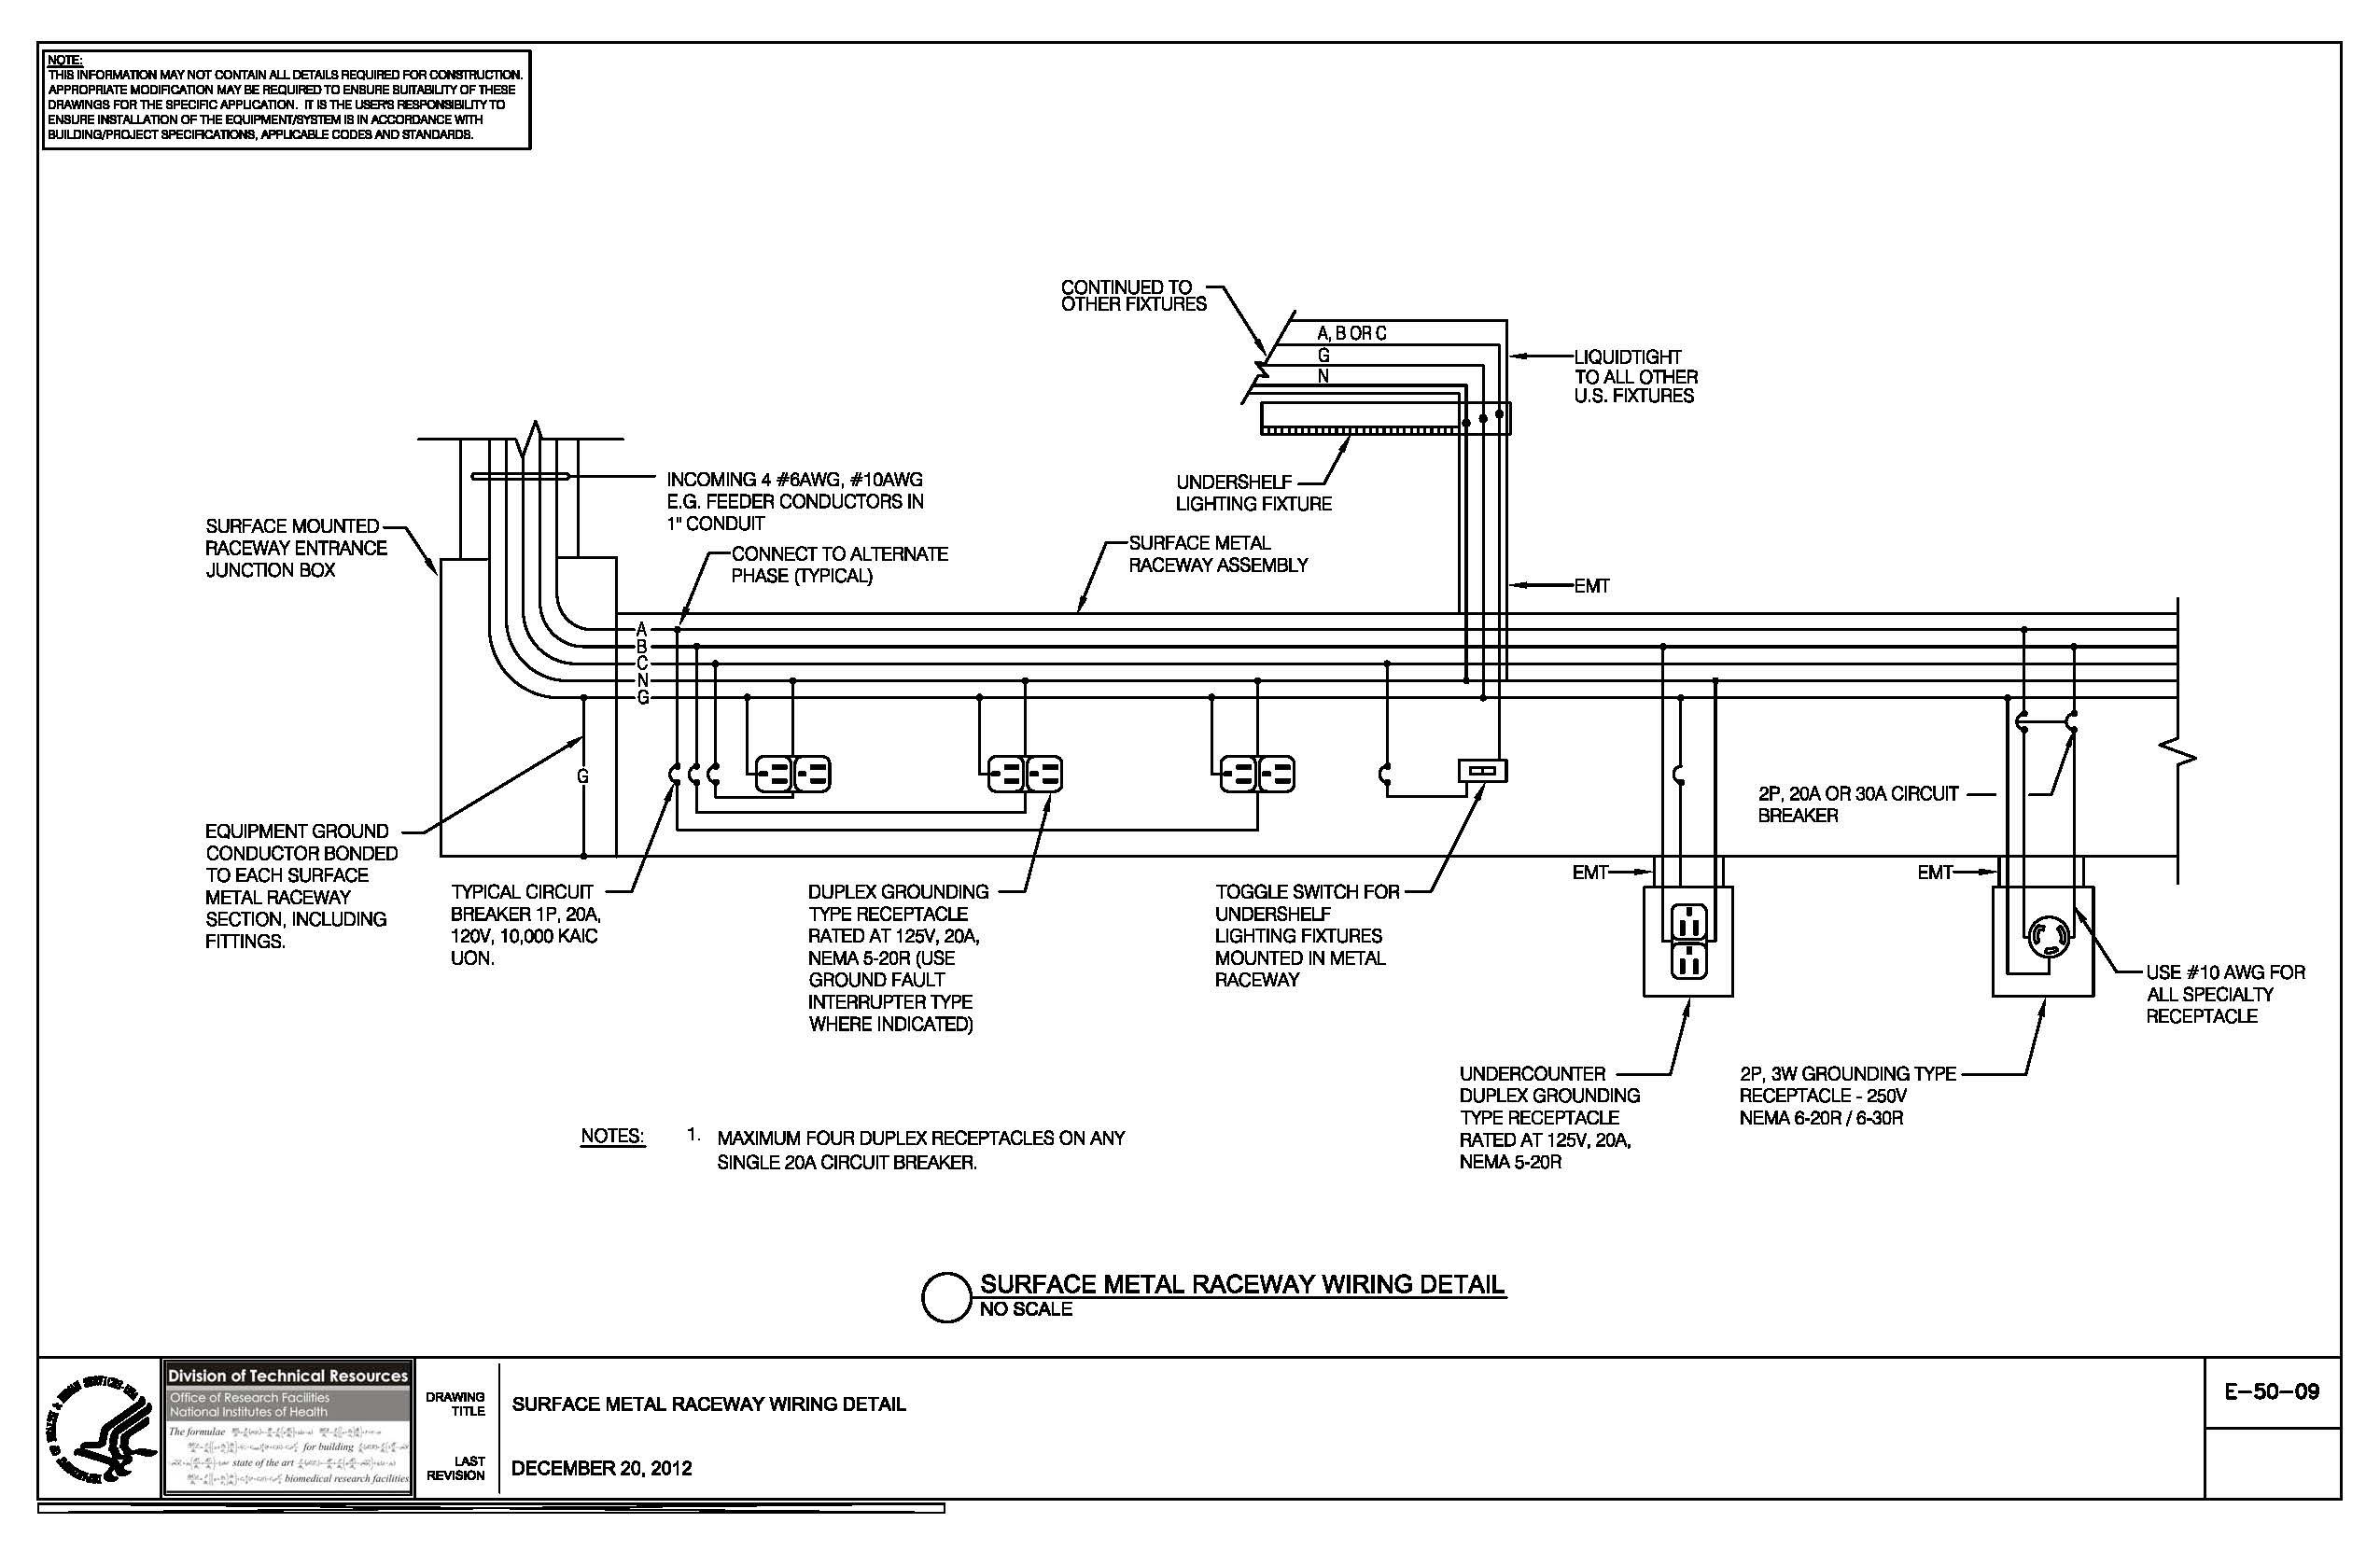 goodman package heat pump wiring diagram nih standard cad details ge heat pump wiring diagram